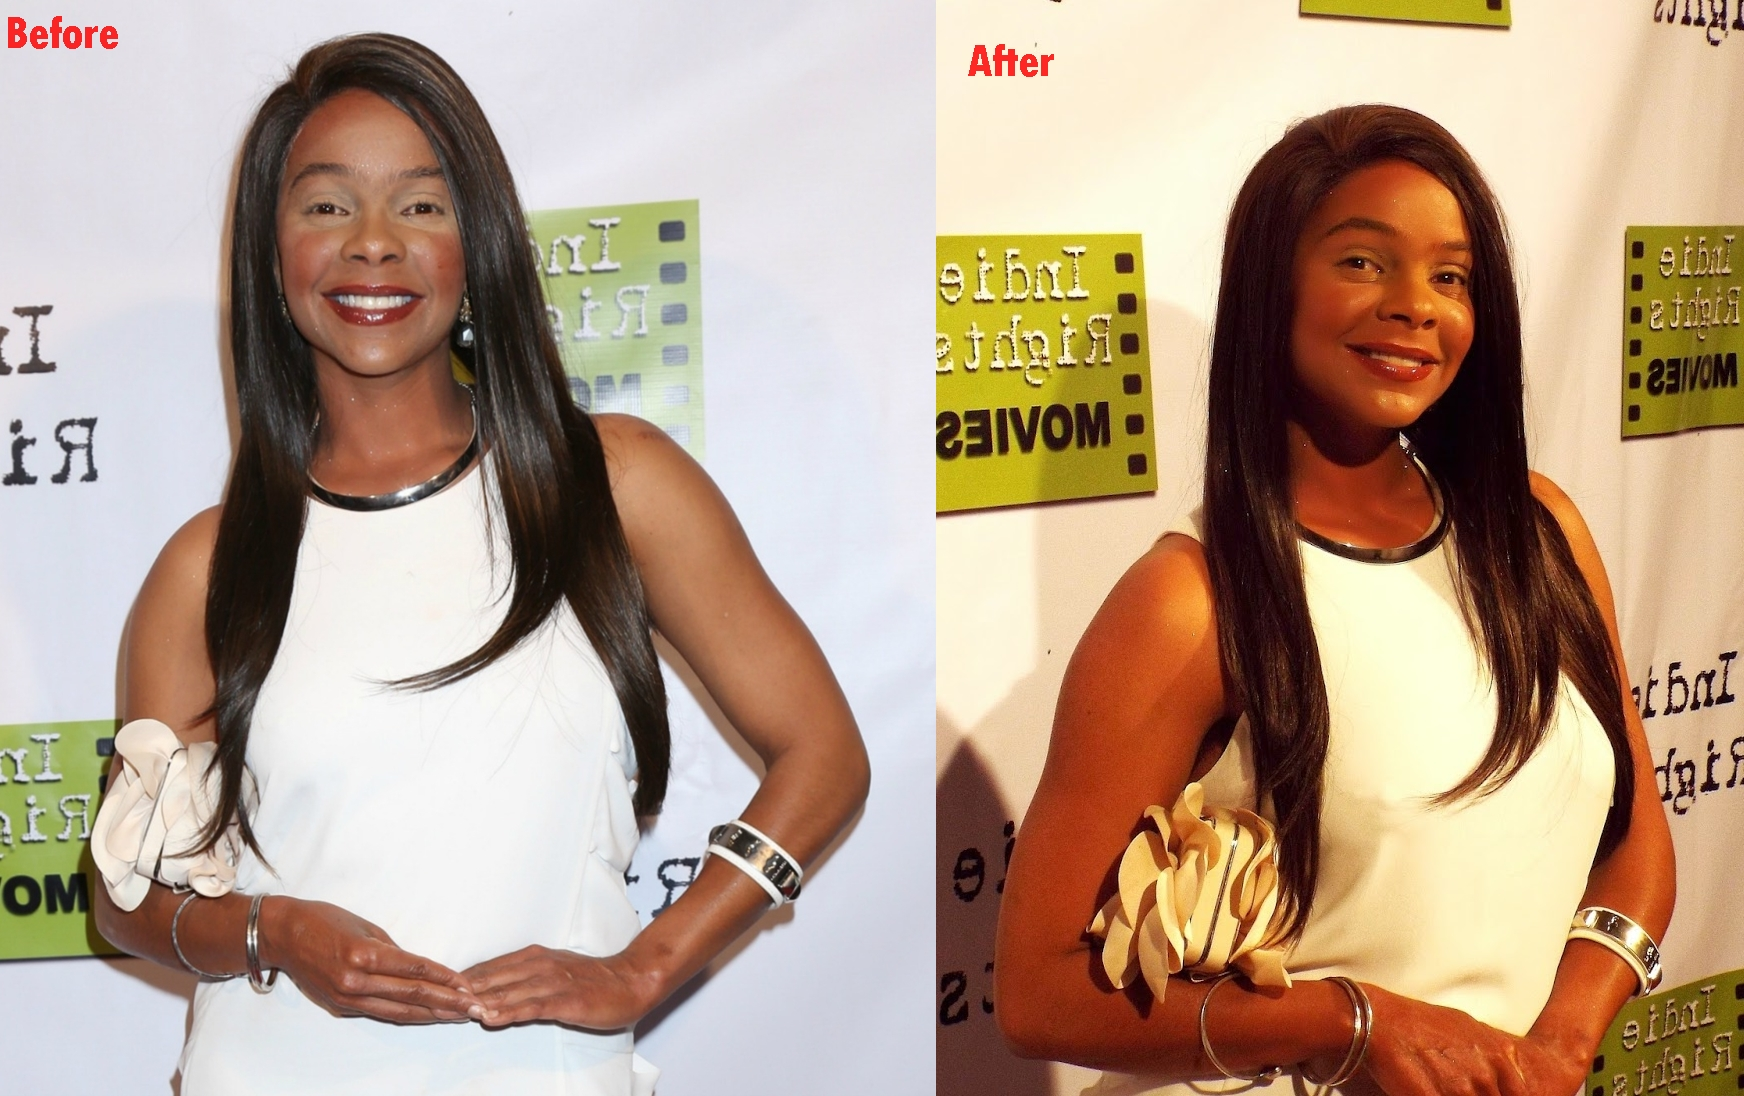 Lark Voorhies plastic surgery before and after pictures Cosmetic surgery